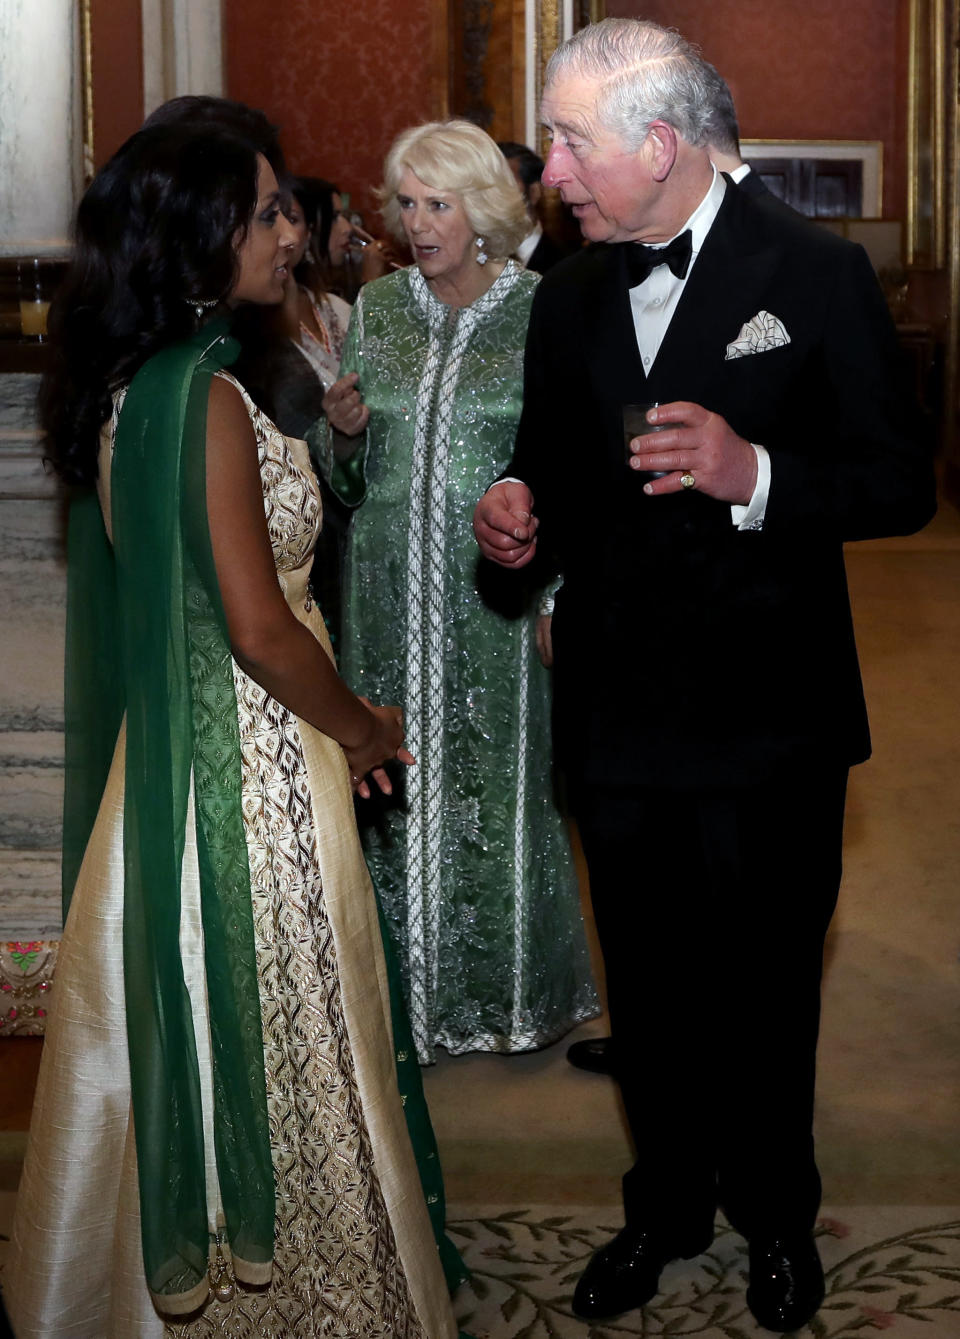 Camilla looked striking in the embellished floor-length gown. [Photo: Getty]